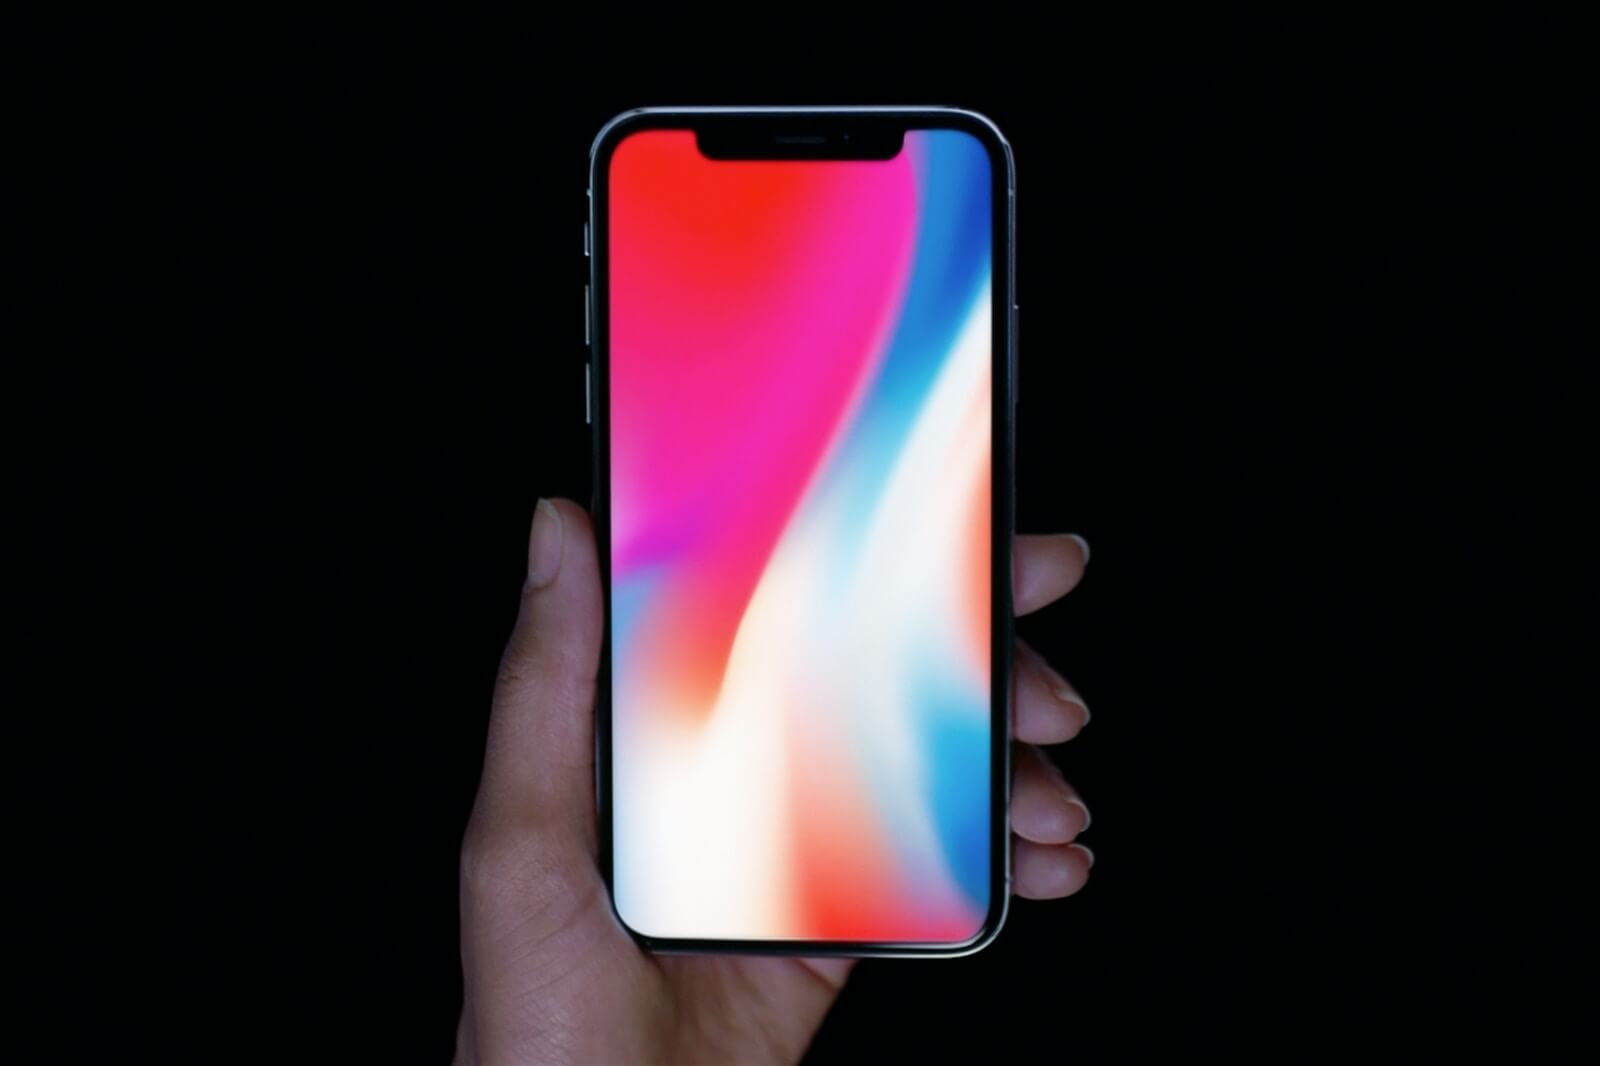 apple iphone x sms ringtone mp3 download